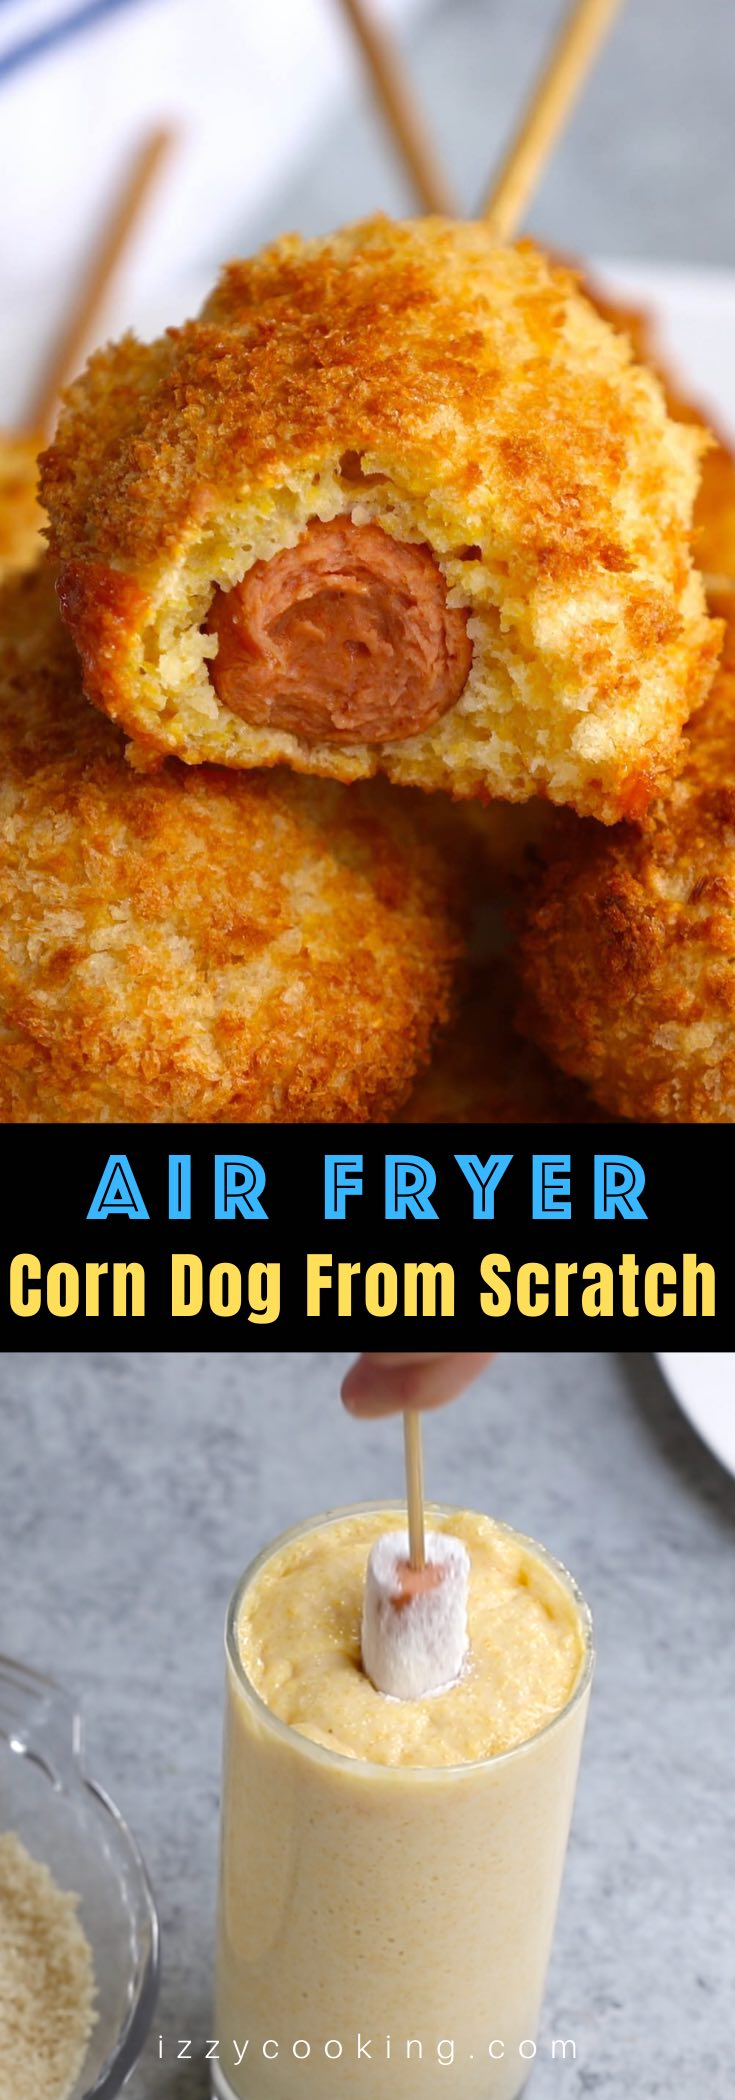 These crispy and crunchy Air Fryer Corn Dogs are made from scratch without deep-frying! A healthy corn dog recipe that everyone loves! We've also included instructions on how to air fry frozen corn dogs if you'd like to cook them straight from the freezer!